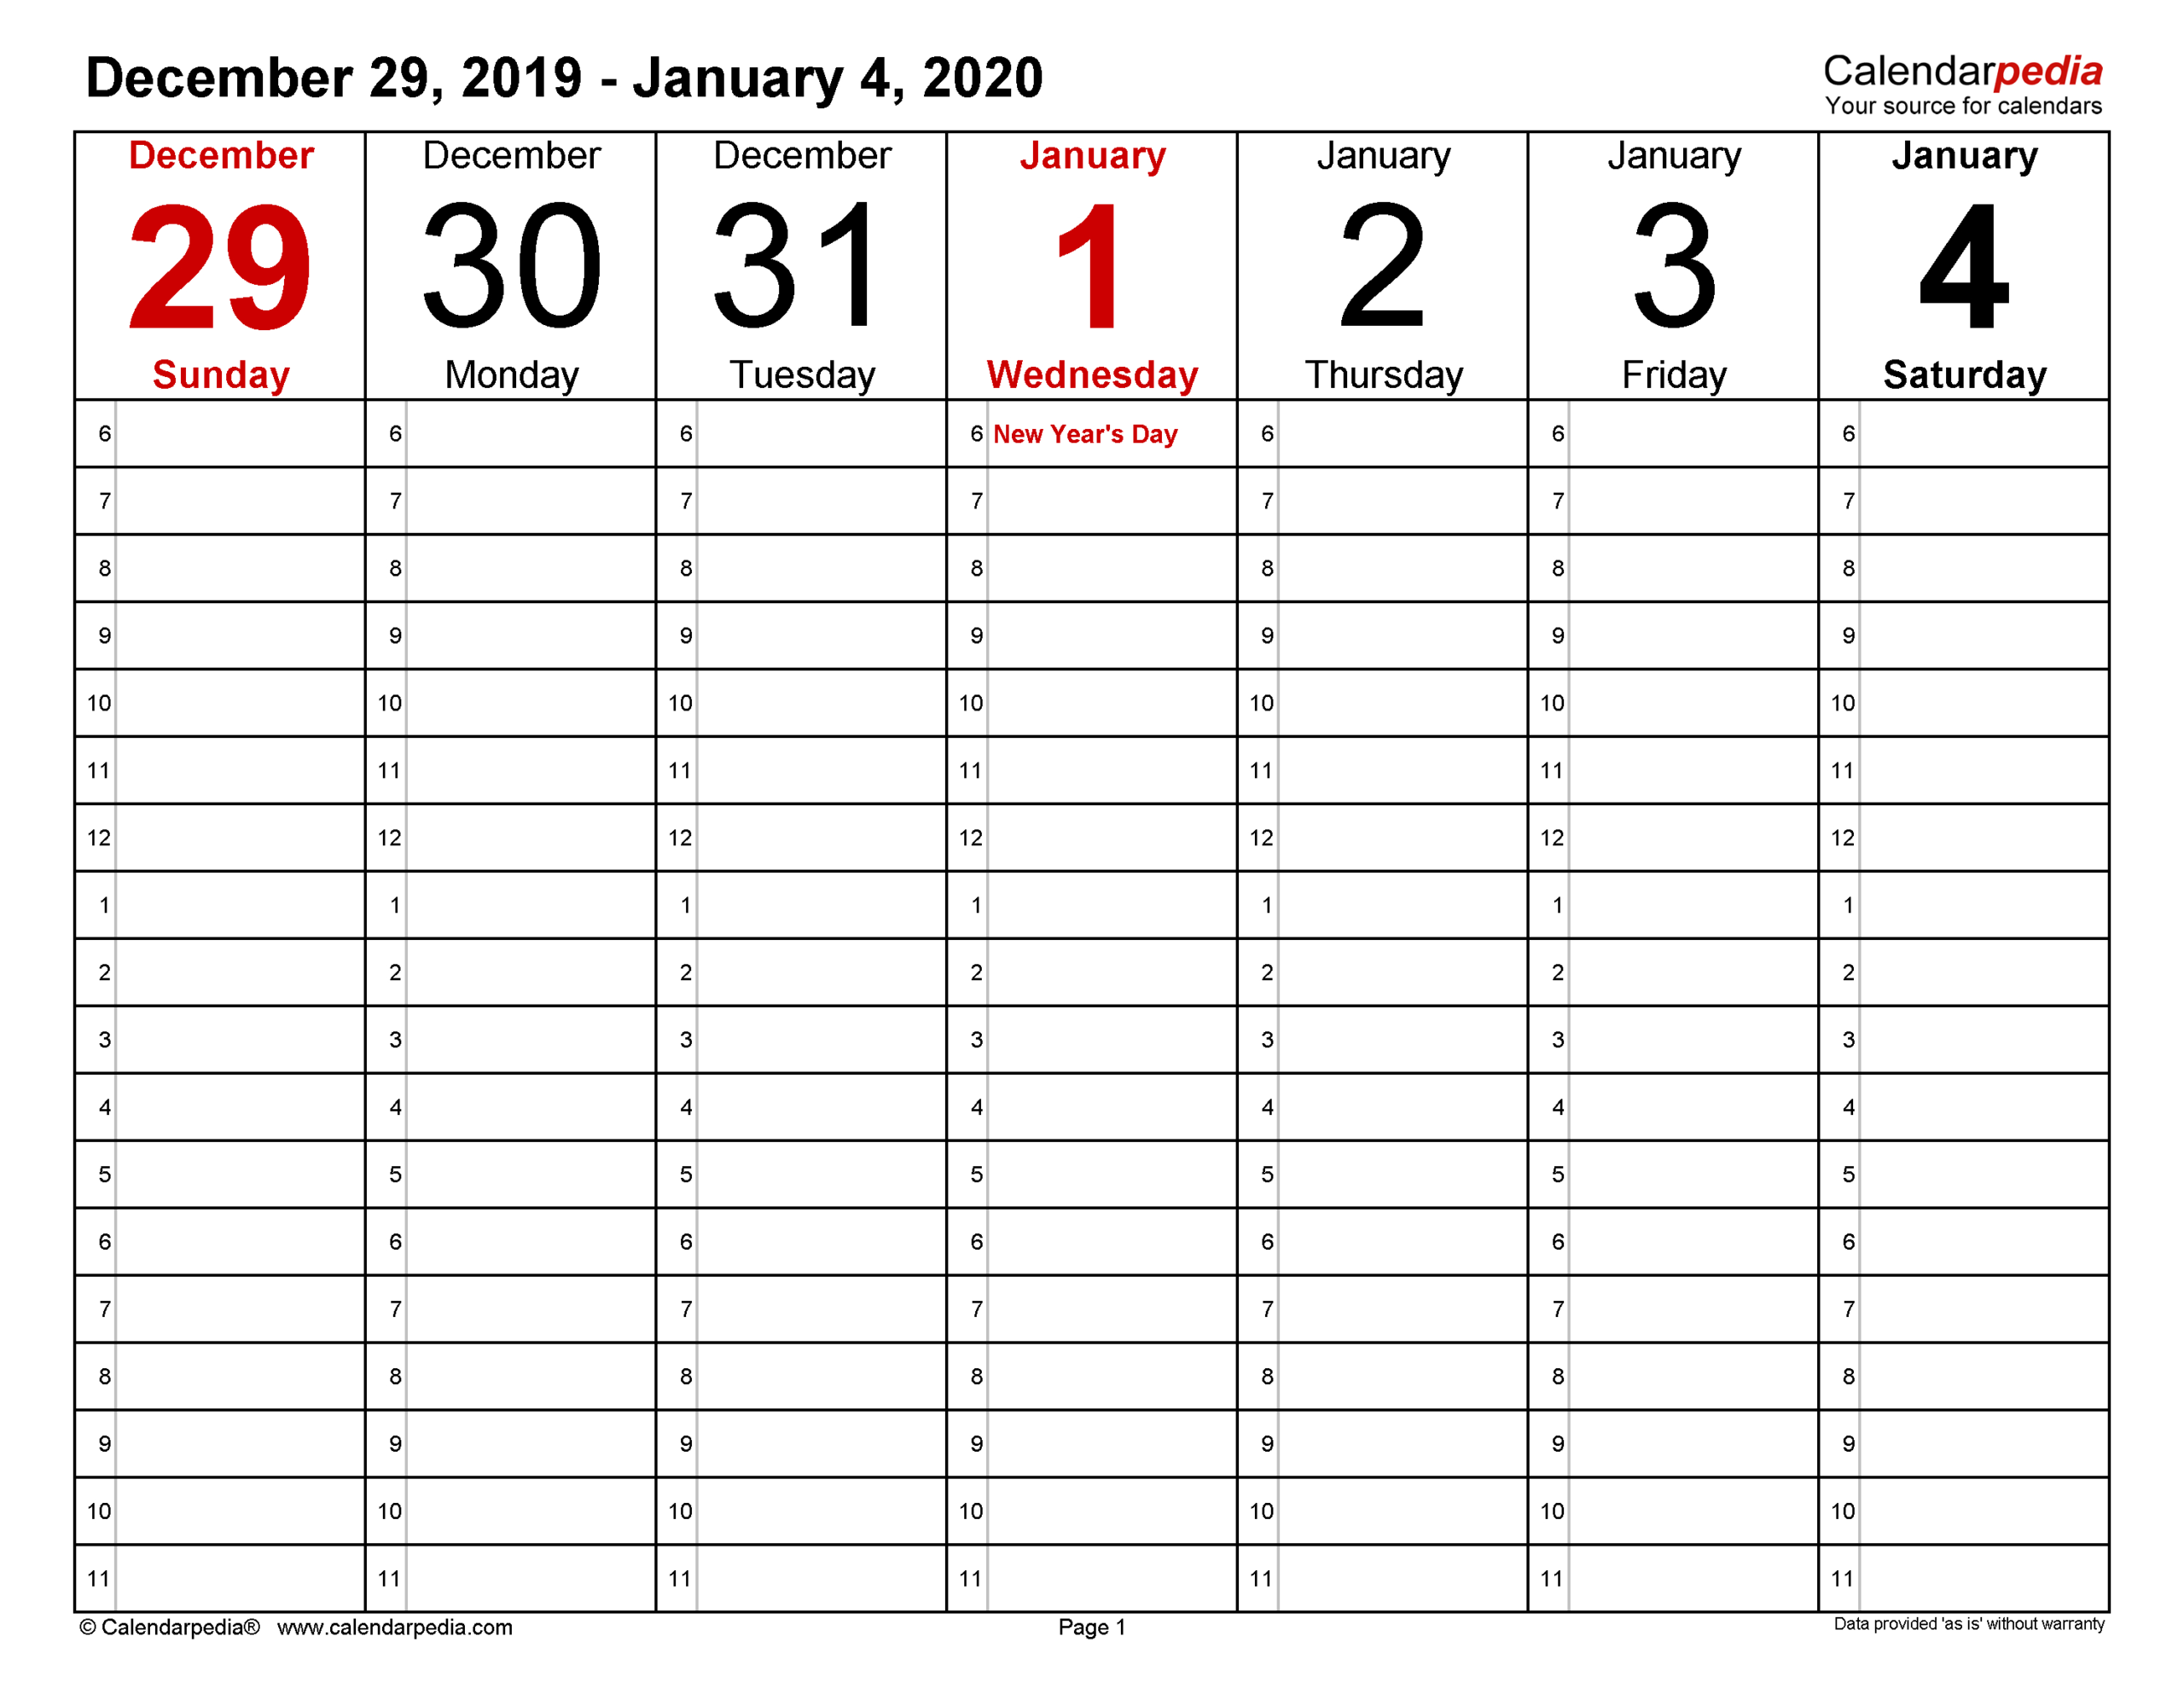 Weekly Calendars 2020 For Word - 12 Free Printable Templates with Calendar November December January Space To Write At The Side